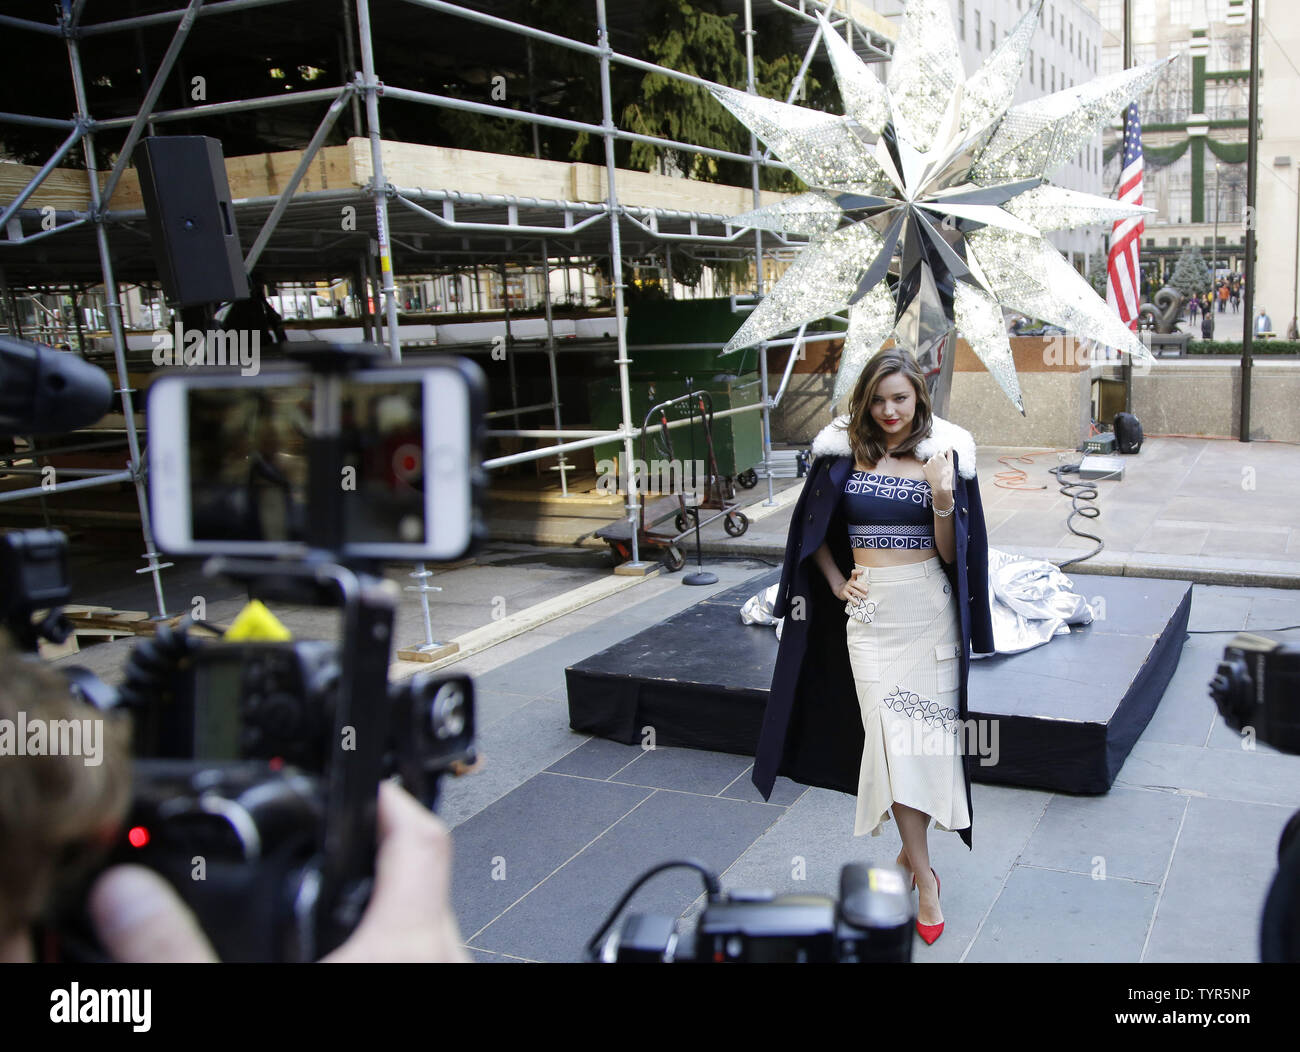 Super Model Miranda Kerr is photographed while standing near the Swarovski Star before it is raised to the top of the world-famous Rockefeller Center Christmas tree on November 16, 2015 in New York City. 2015 marks the 12th year the Swarovski Star will adorn the Rockefeller Center Christmas tree. The Star is comprised of 25,000 crystals, with one million facets, and measures 9 and 1/2 feet in diameter and 1 1/2 feet deep. The Star weighs 550 pounds, including 300 pounds of crystal panels, and is composed of six outer rays and six smaller inner rays.       Photo by John Angelillo/UPI Stock Photo